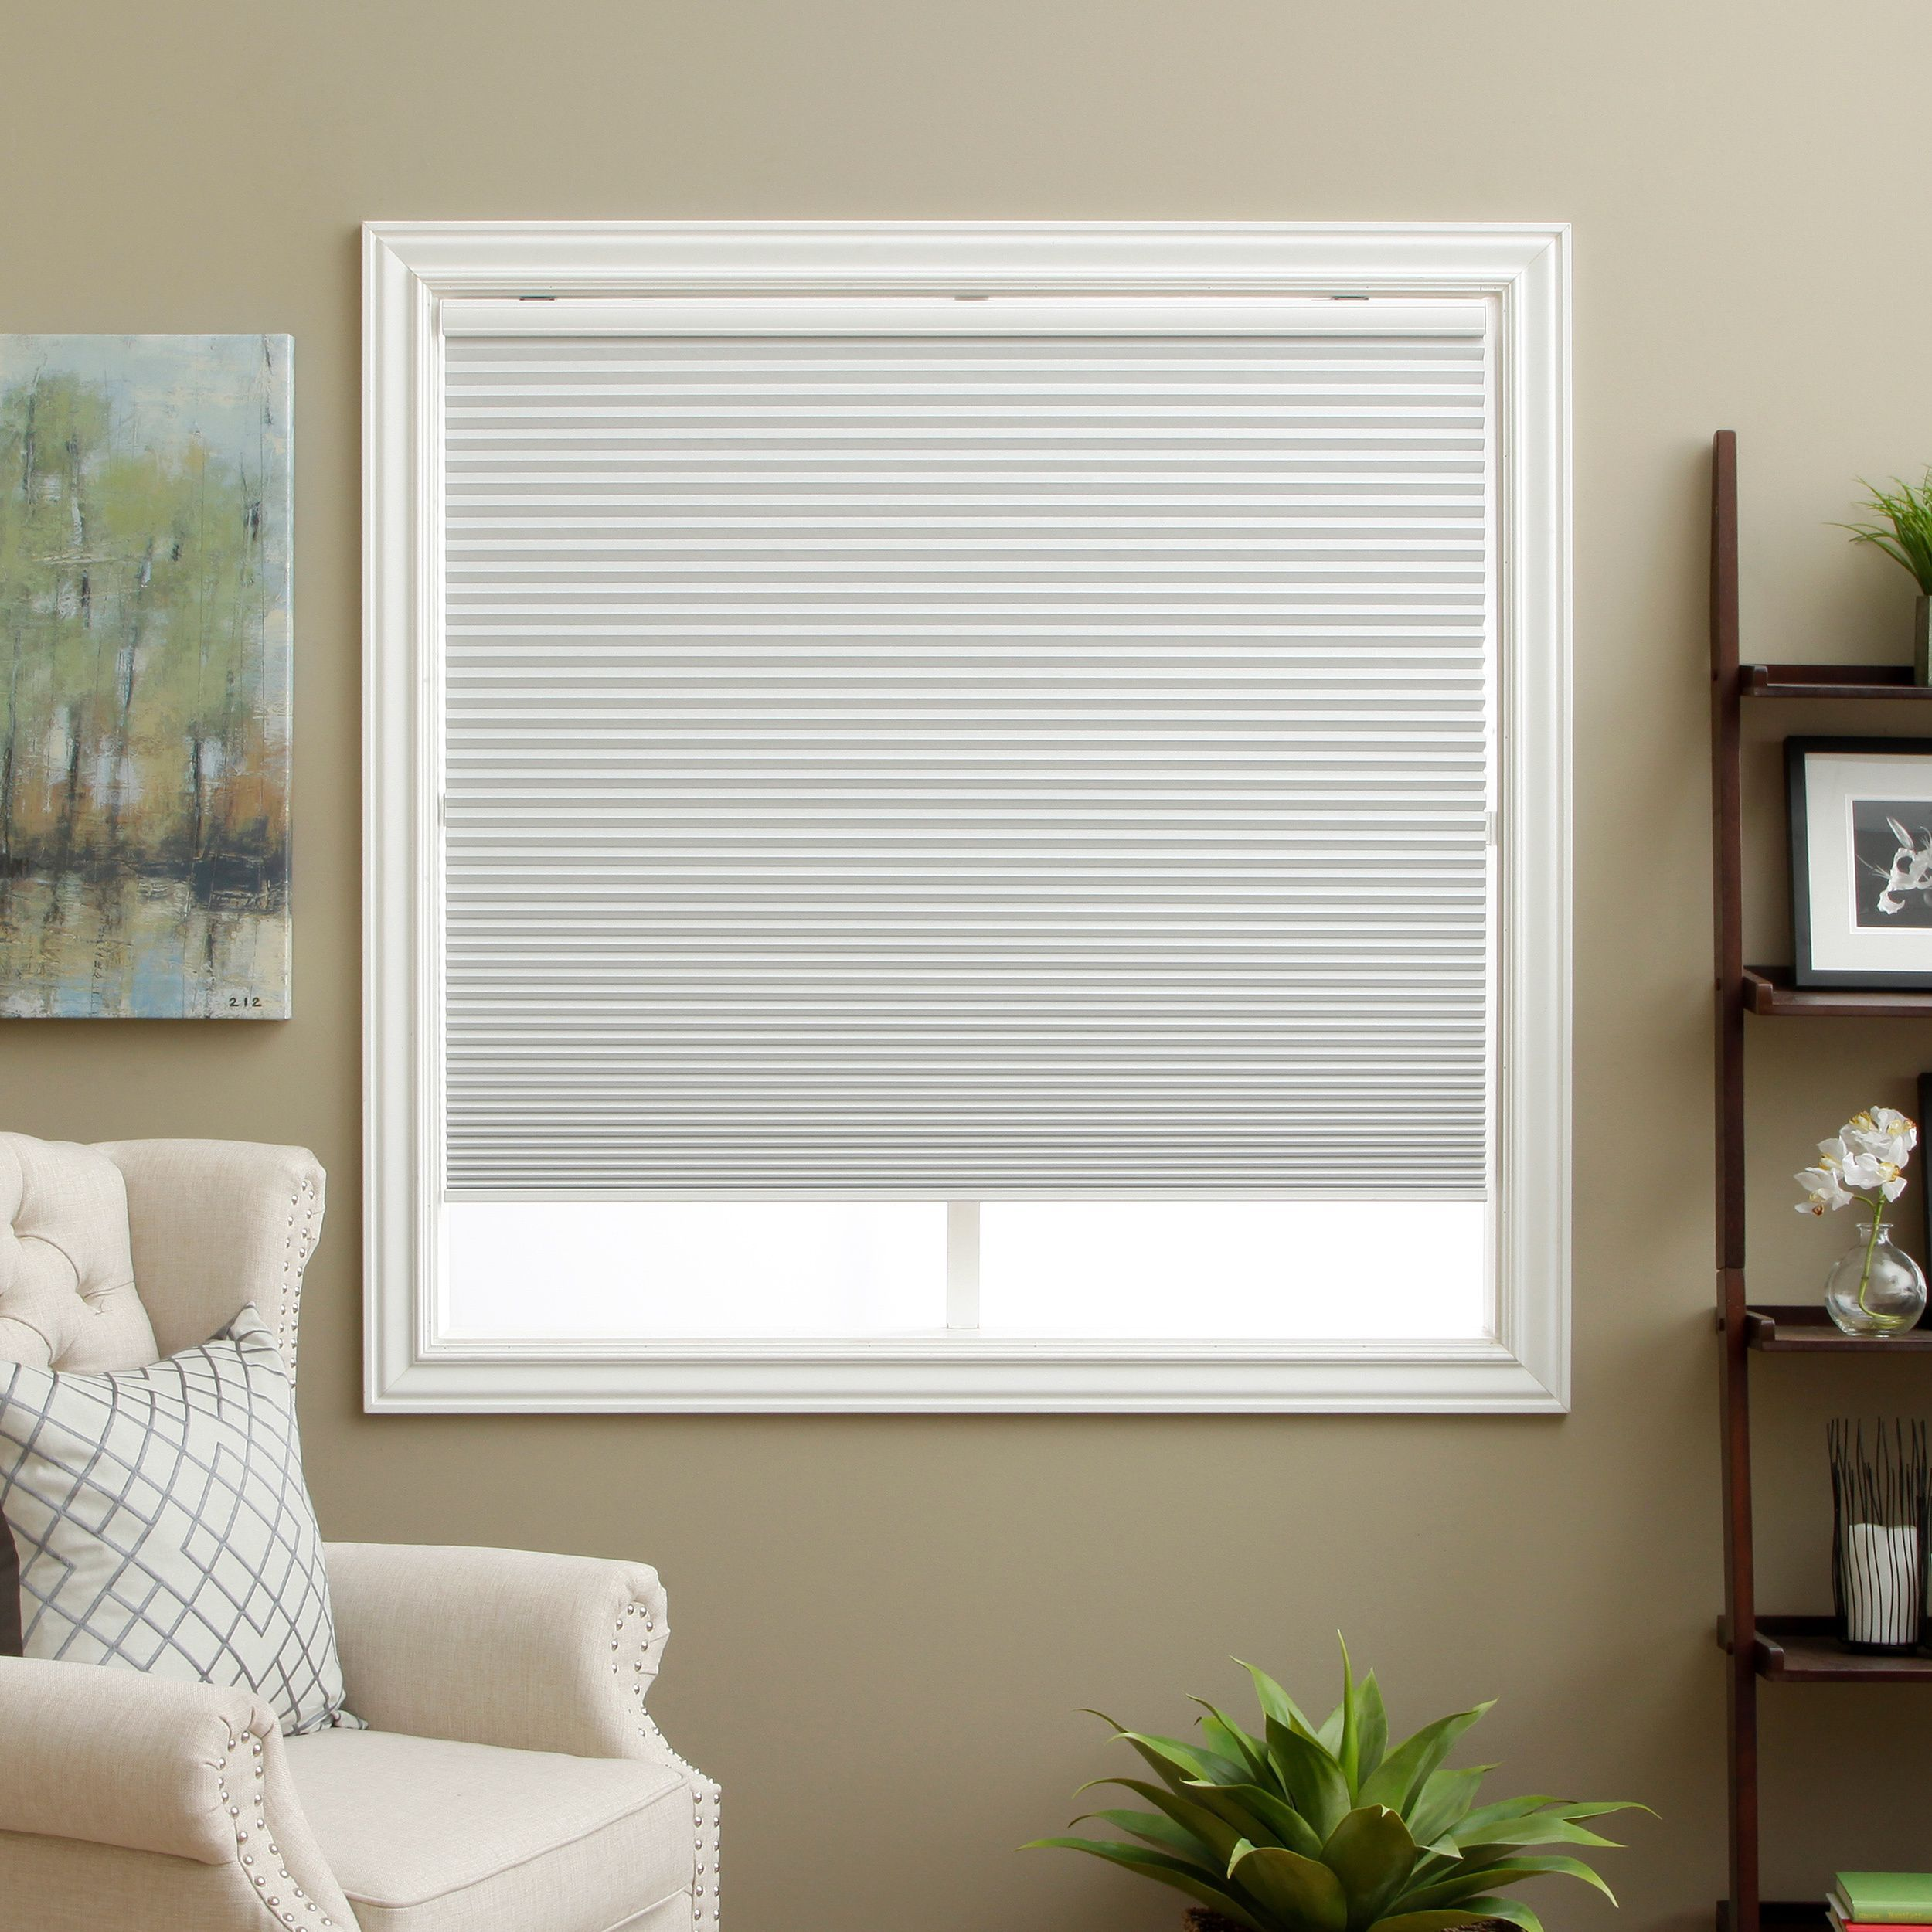 Keep Your Room Completely Dark With These White Cellular Blackout Shades The Innovative Honeycomb Shell